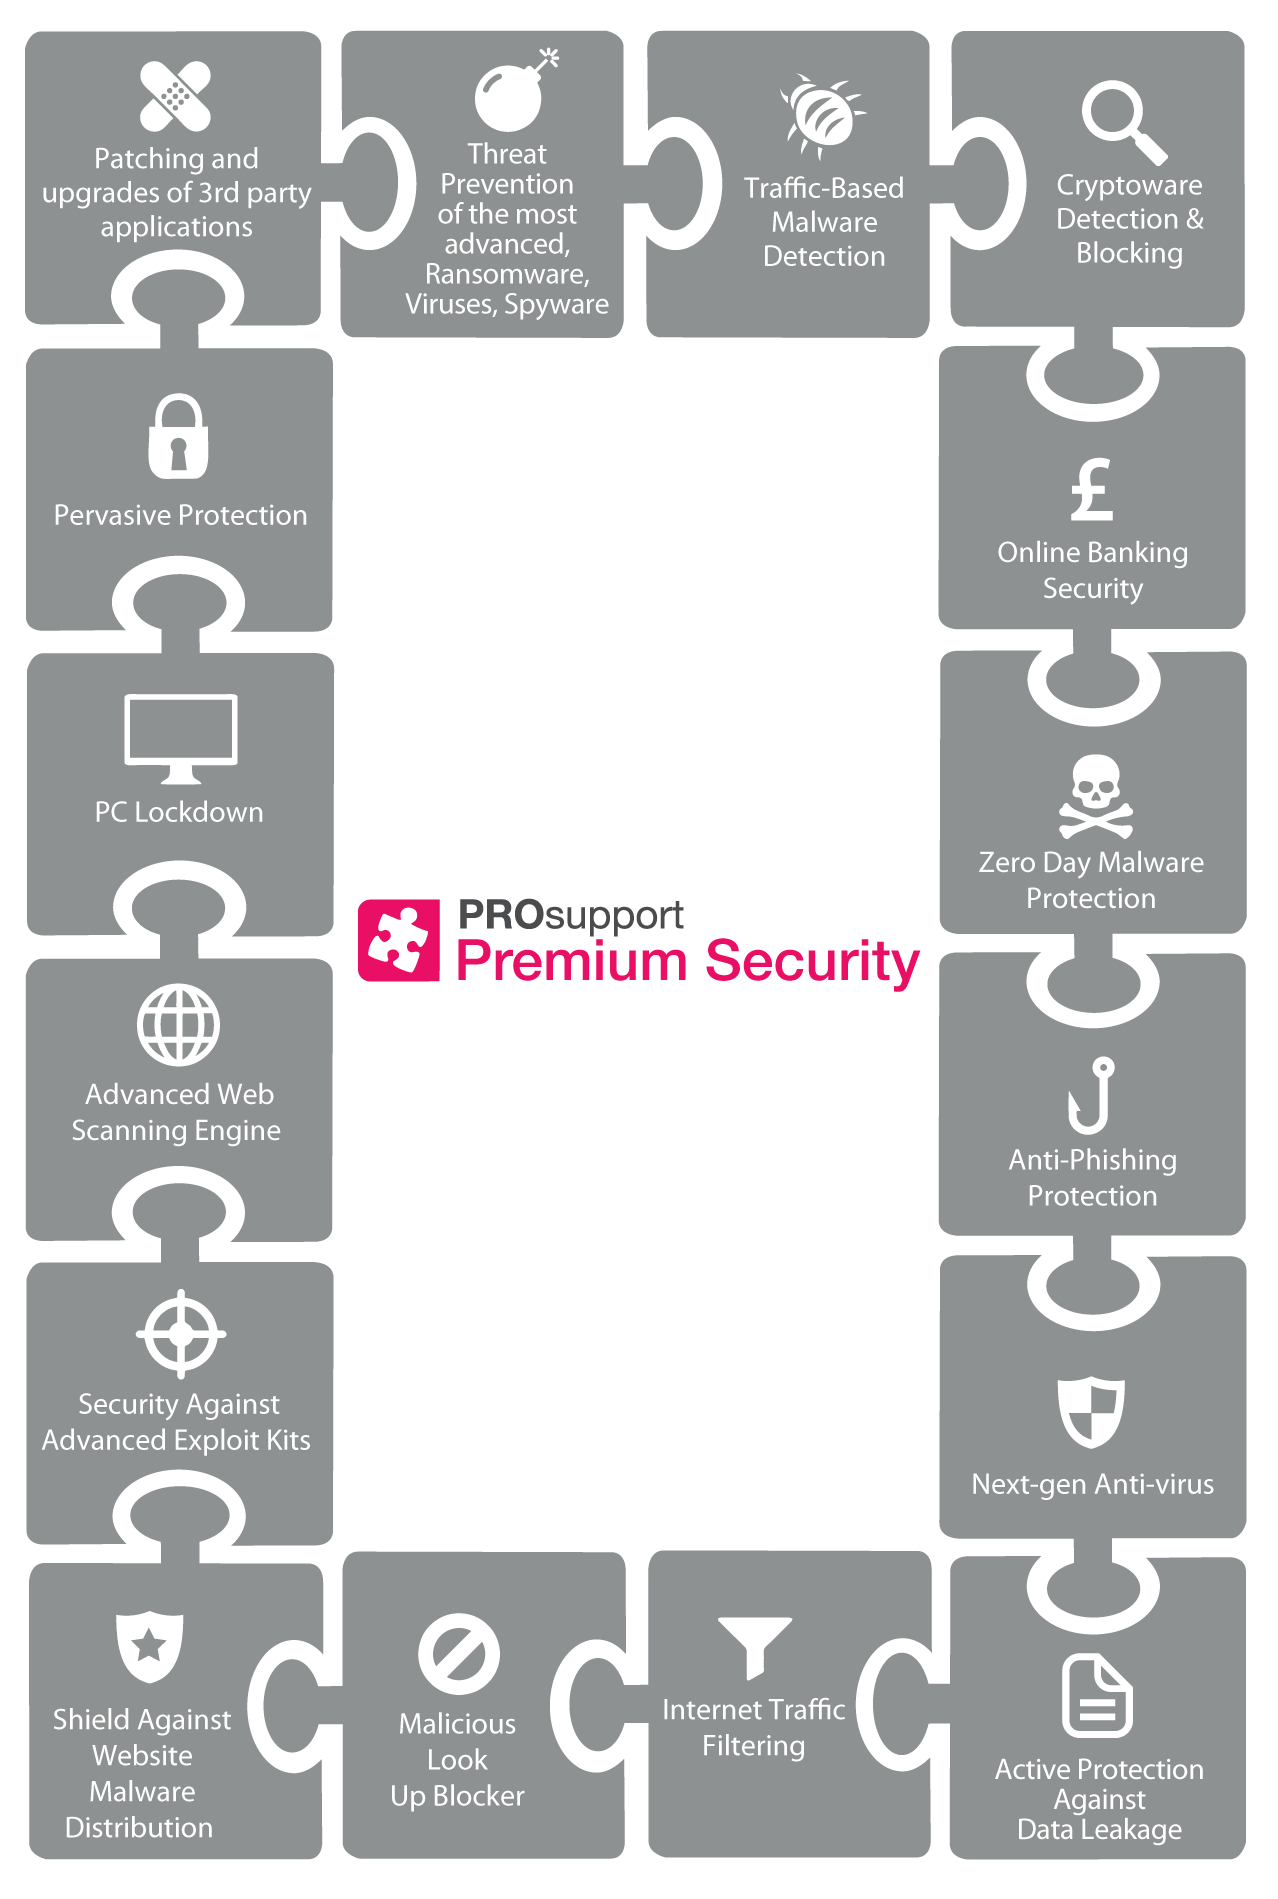 PROsupport Premium Security Infographic